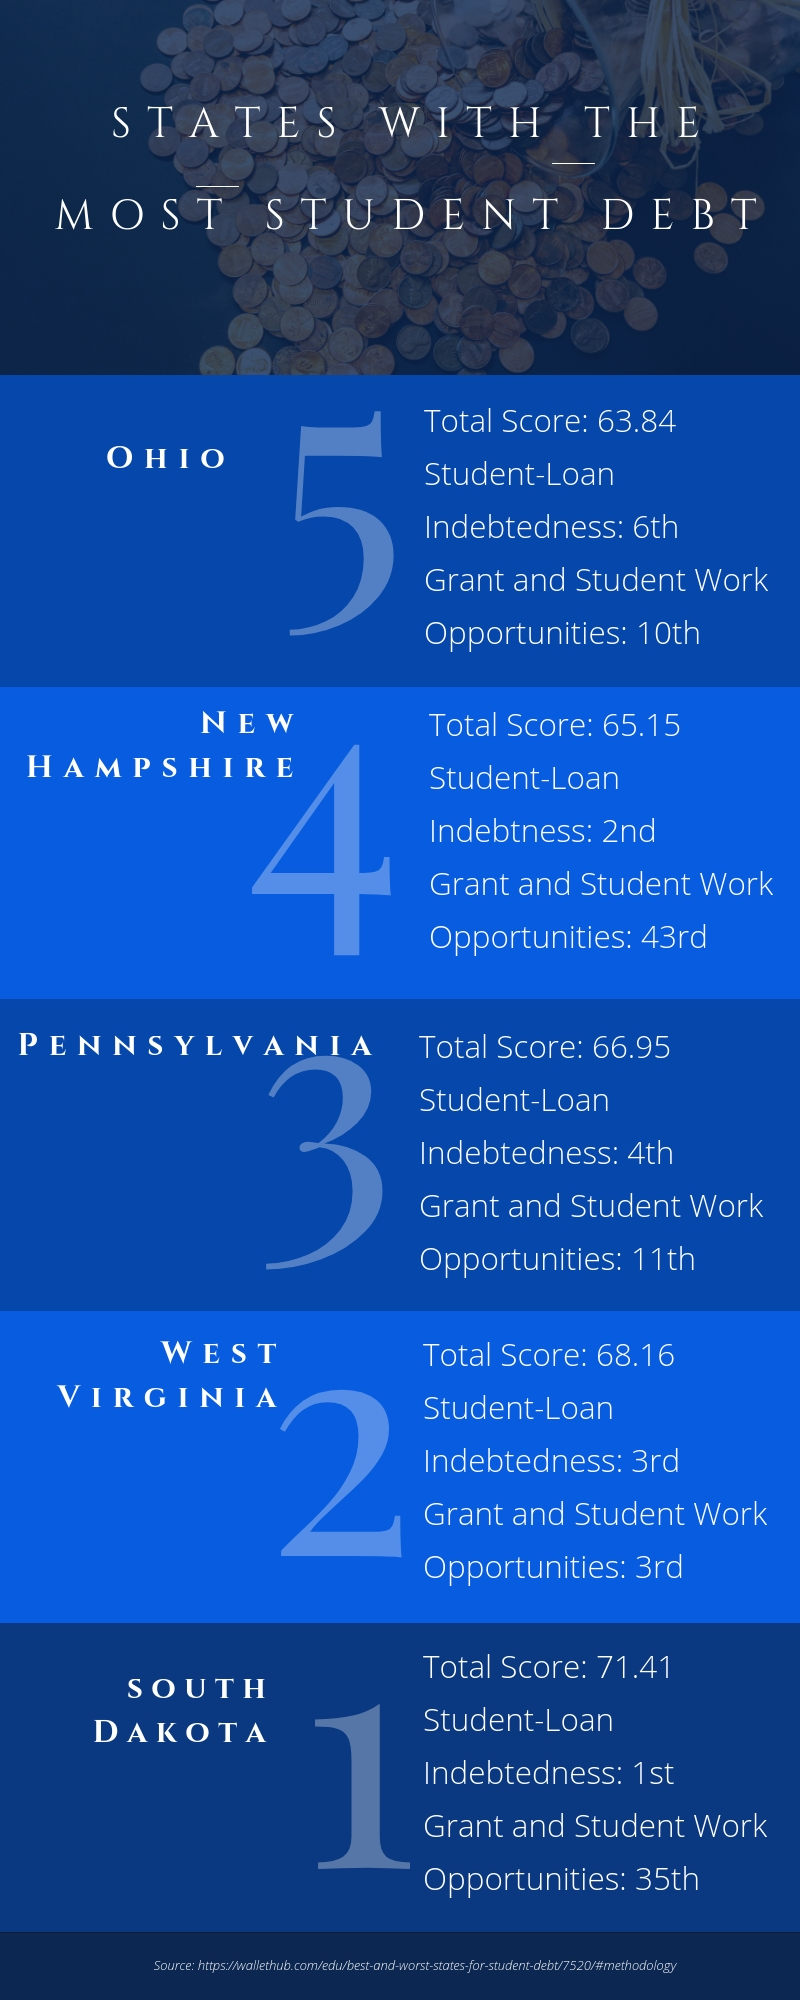 Where Student Debt is the Best and Worst for Dentists